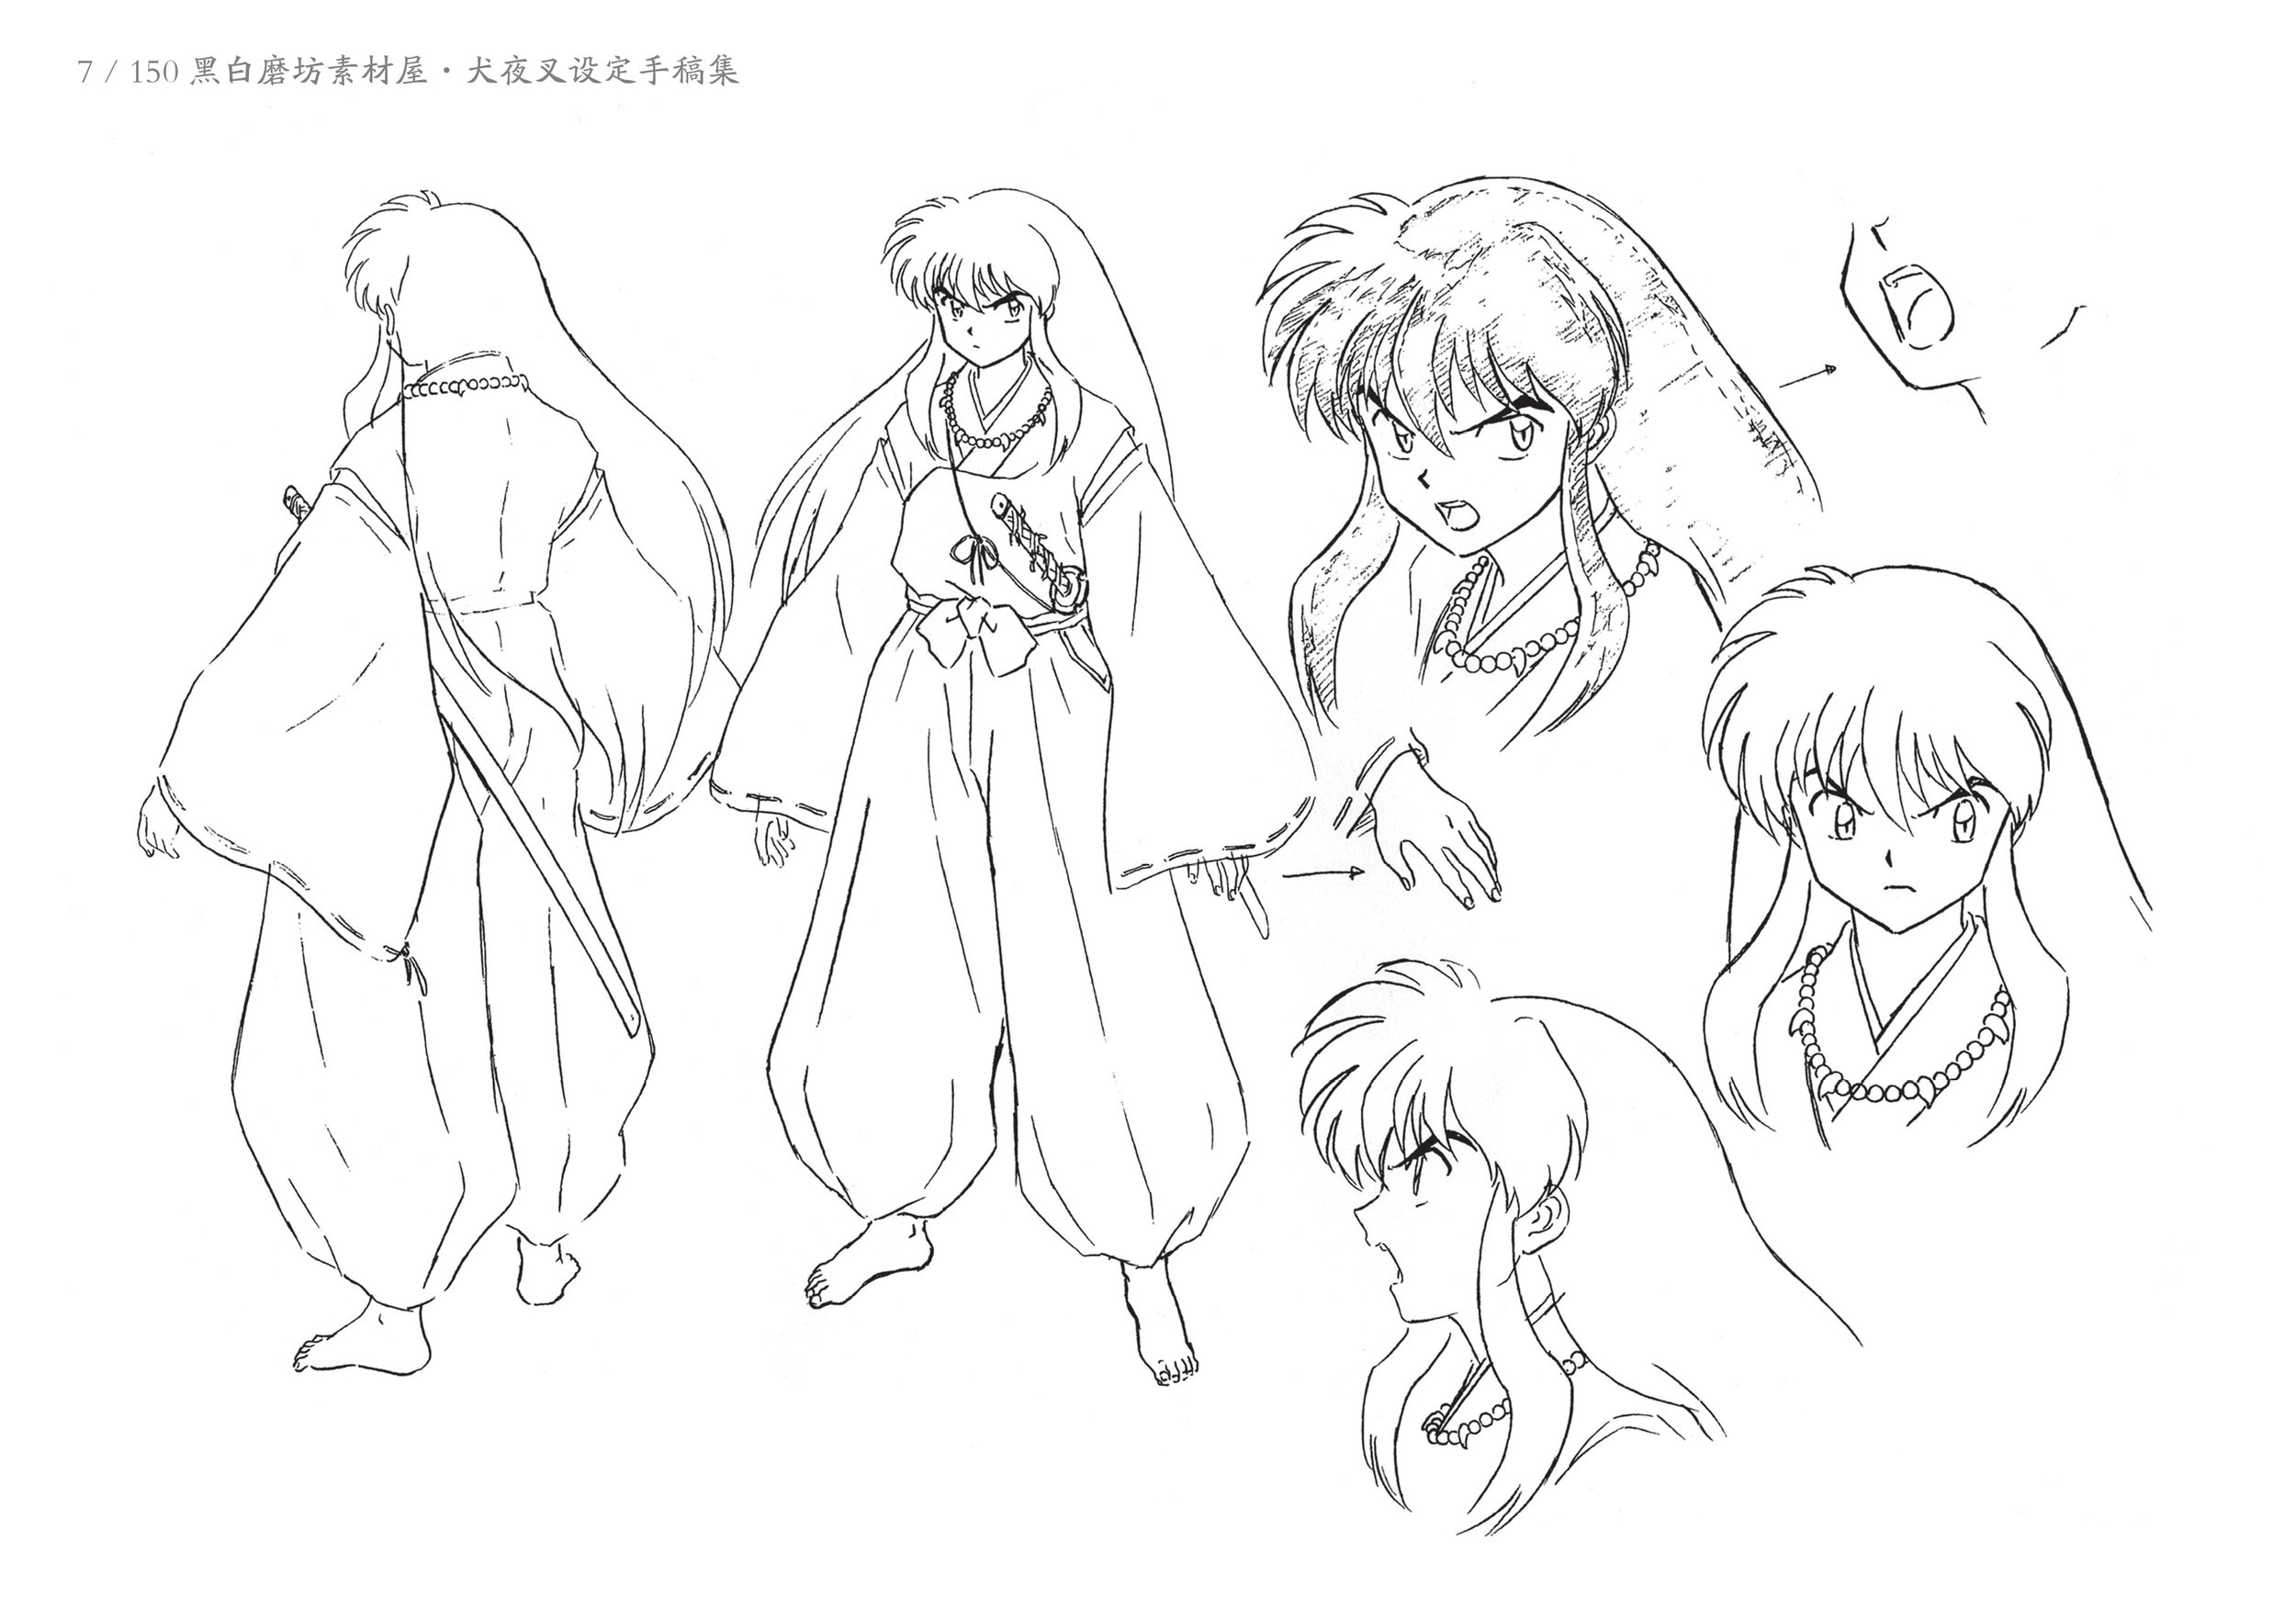 Art of the Inuyasha A - 7.jpg